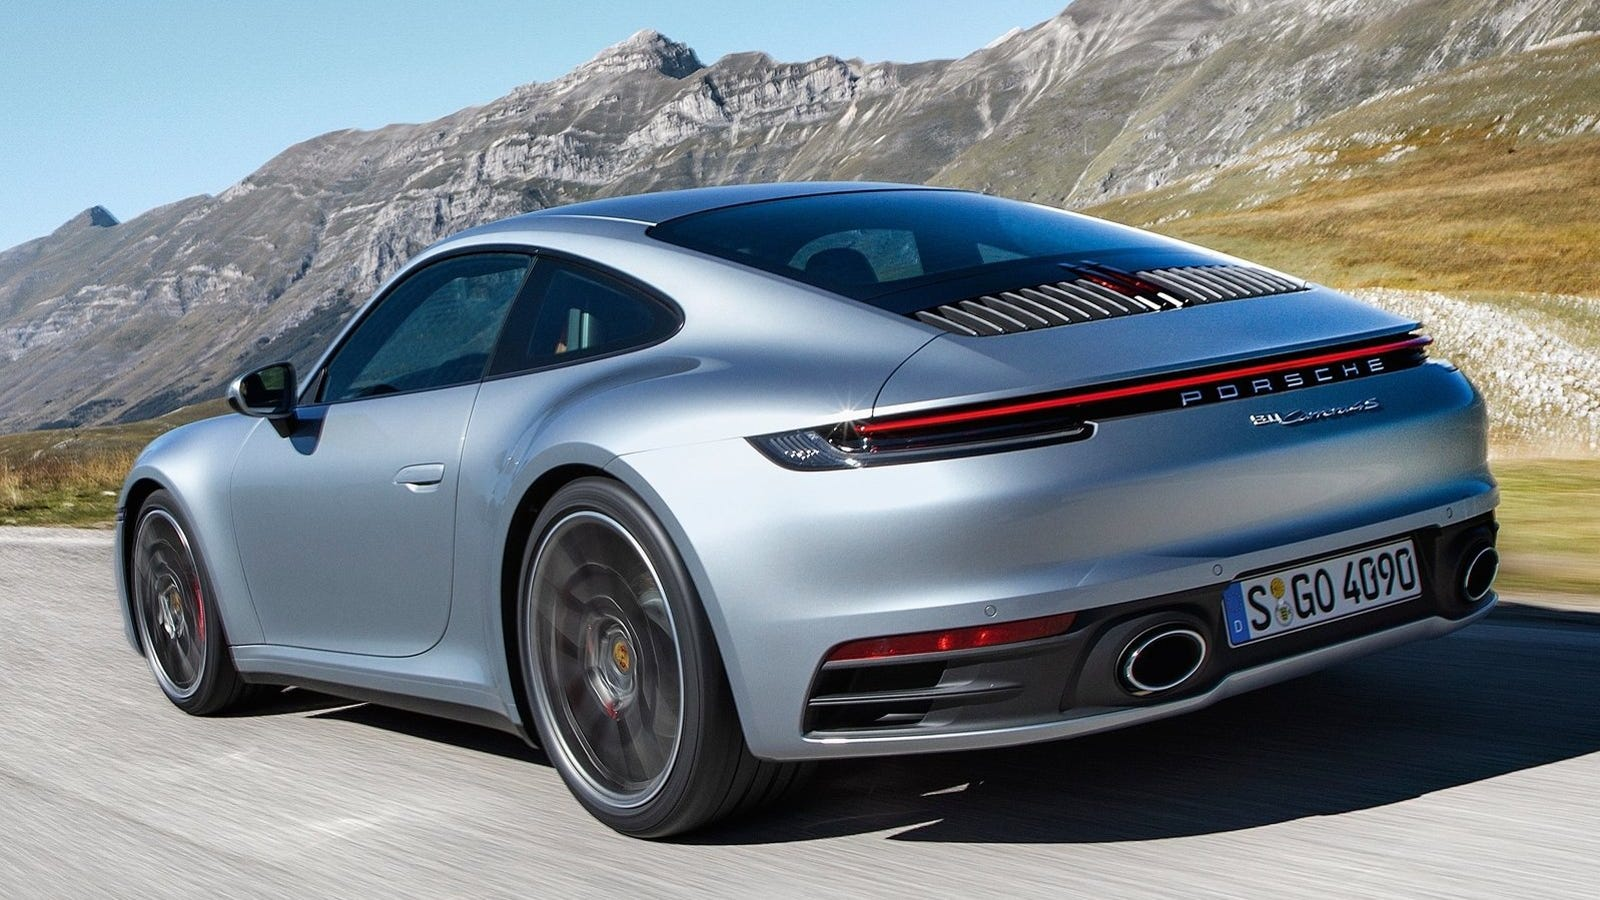 The New Porsche 911 Comes With 'Wet Mode' If You Drive Too